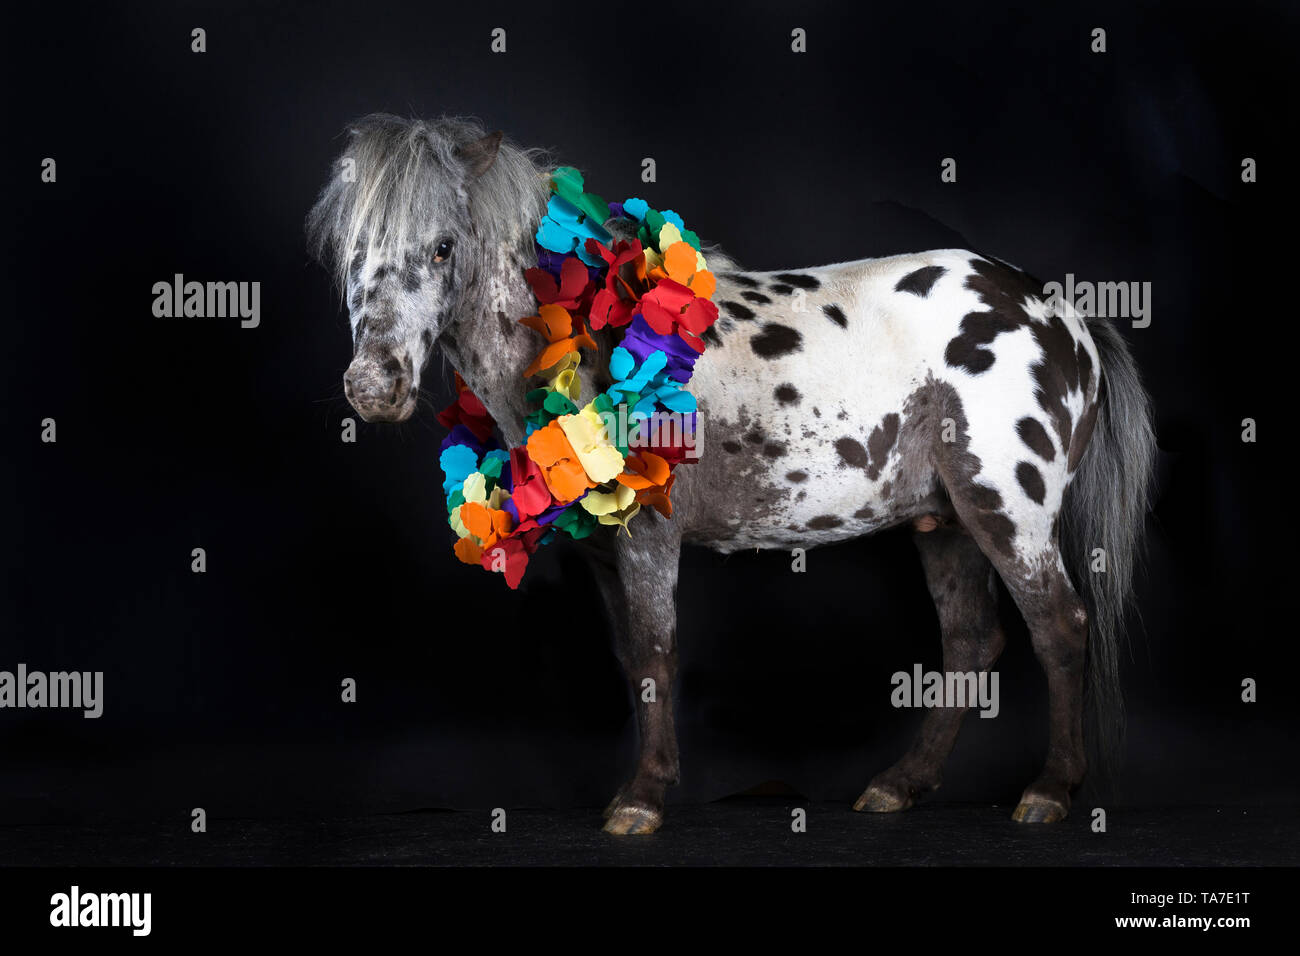 Miniature Appaloosa. Adult horse standing, wearing multicoloured garland Studio picture against a black background. Germany - Stock Image